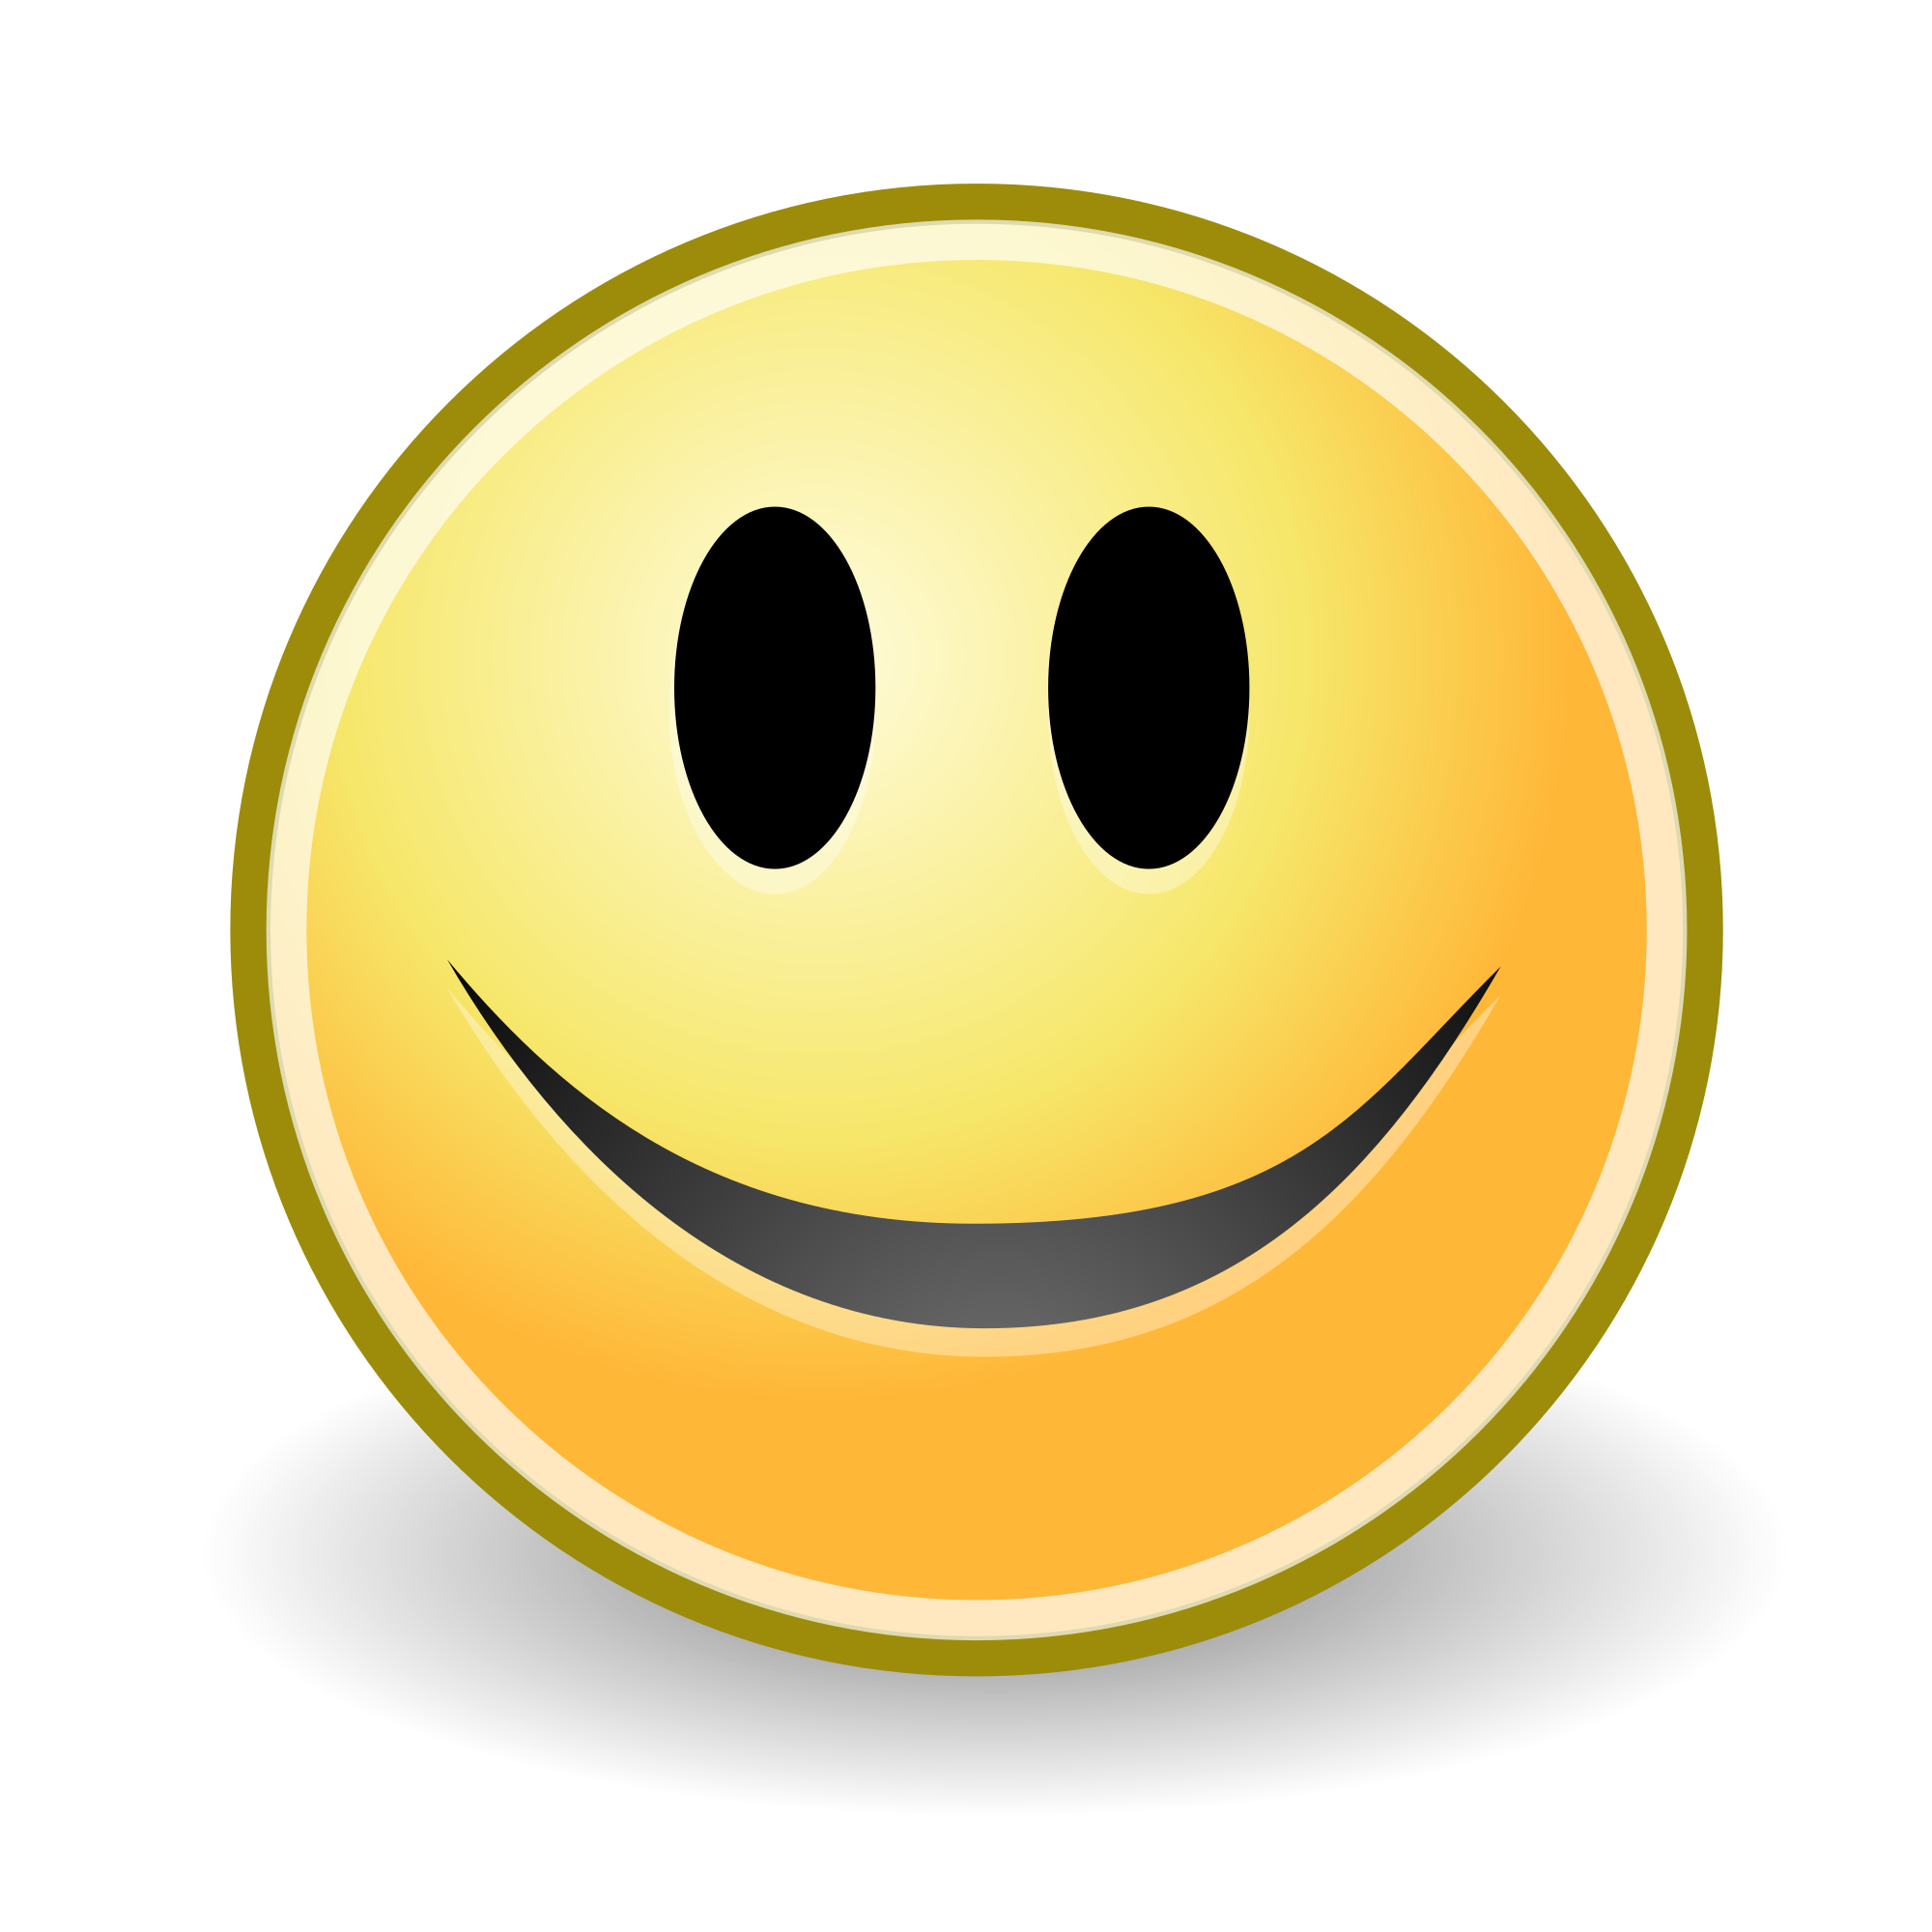 Does Stress Bring Out Your Best or Your Worst? Smiley